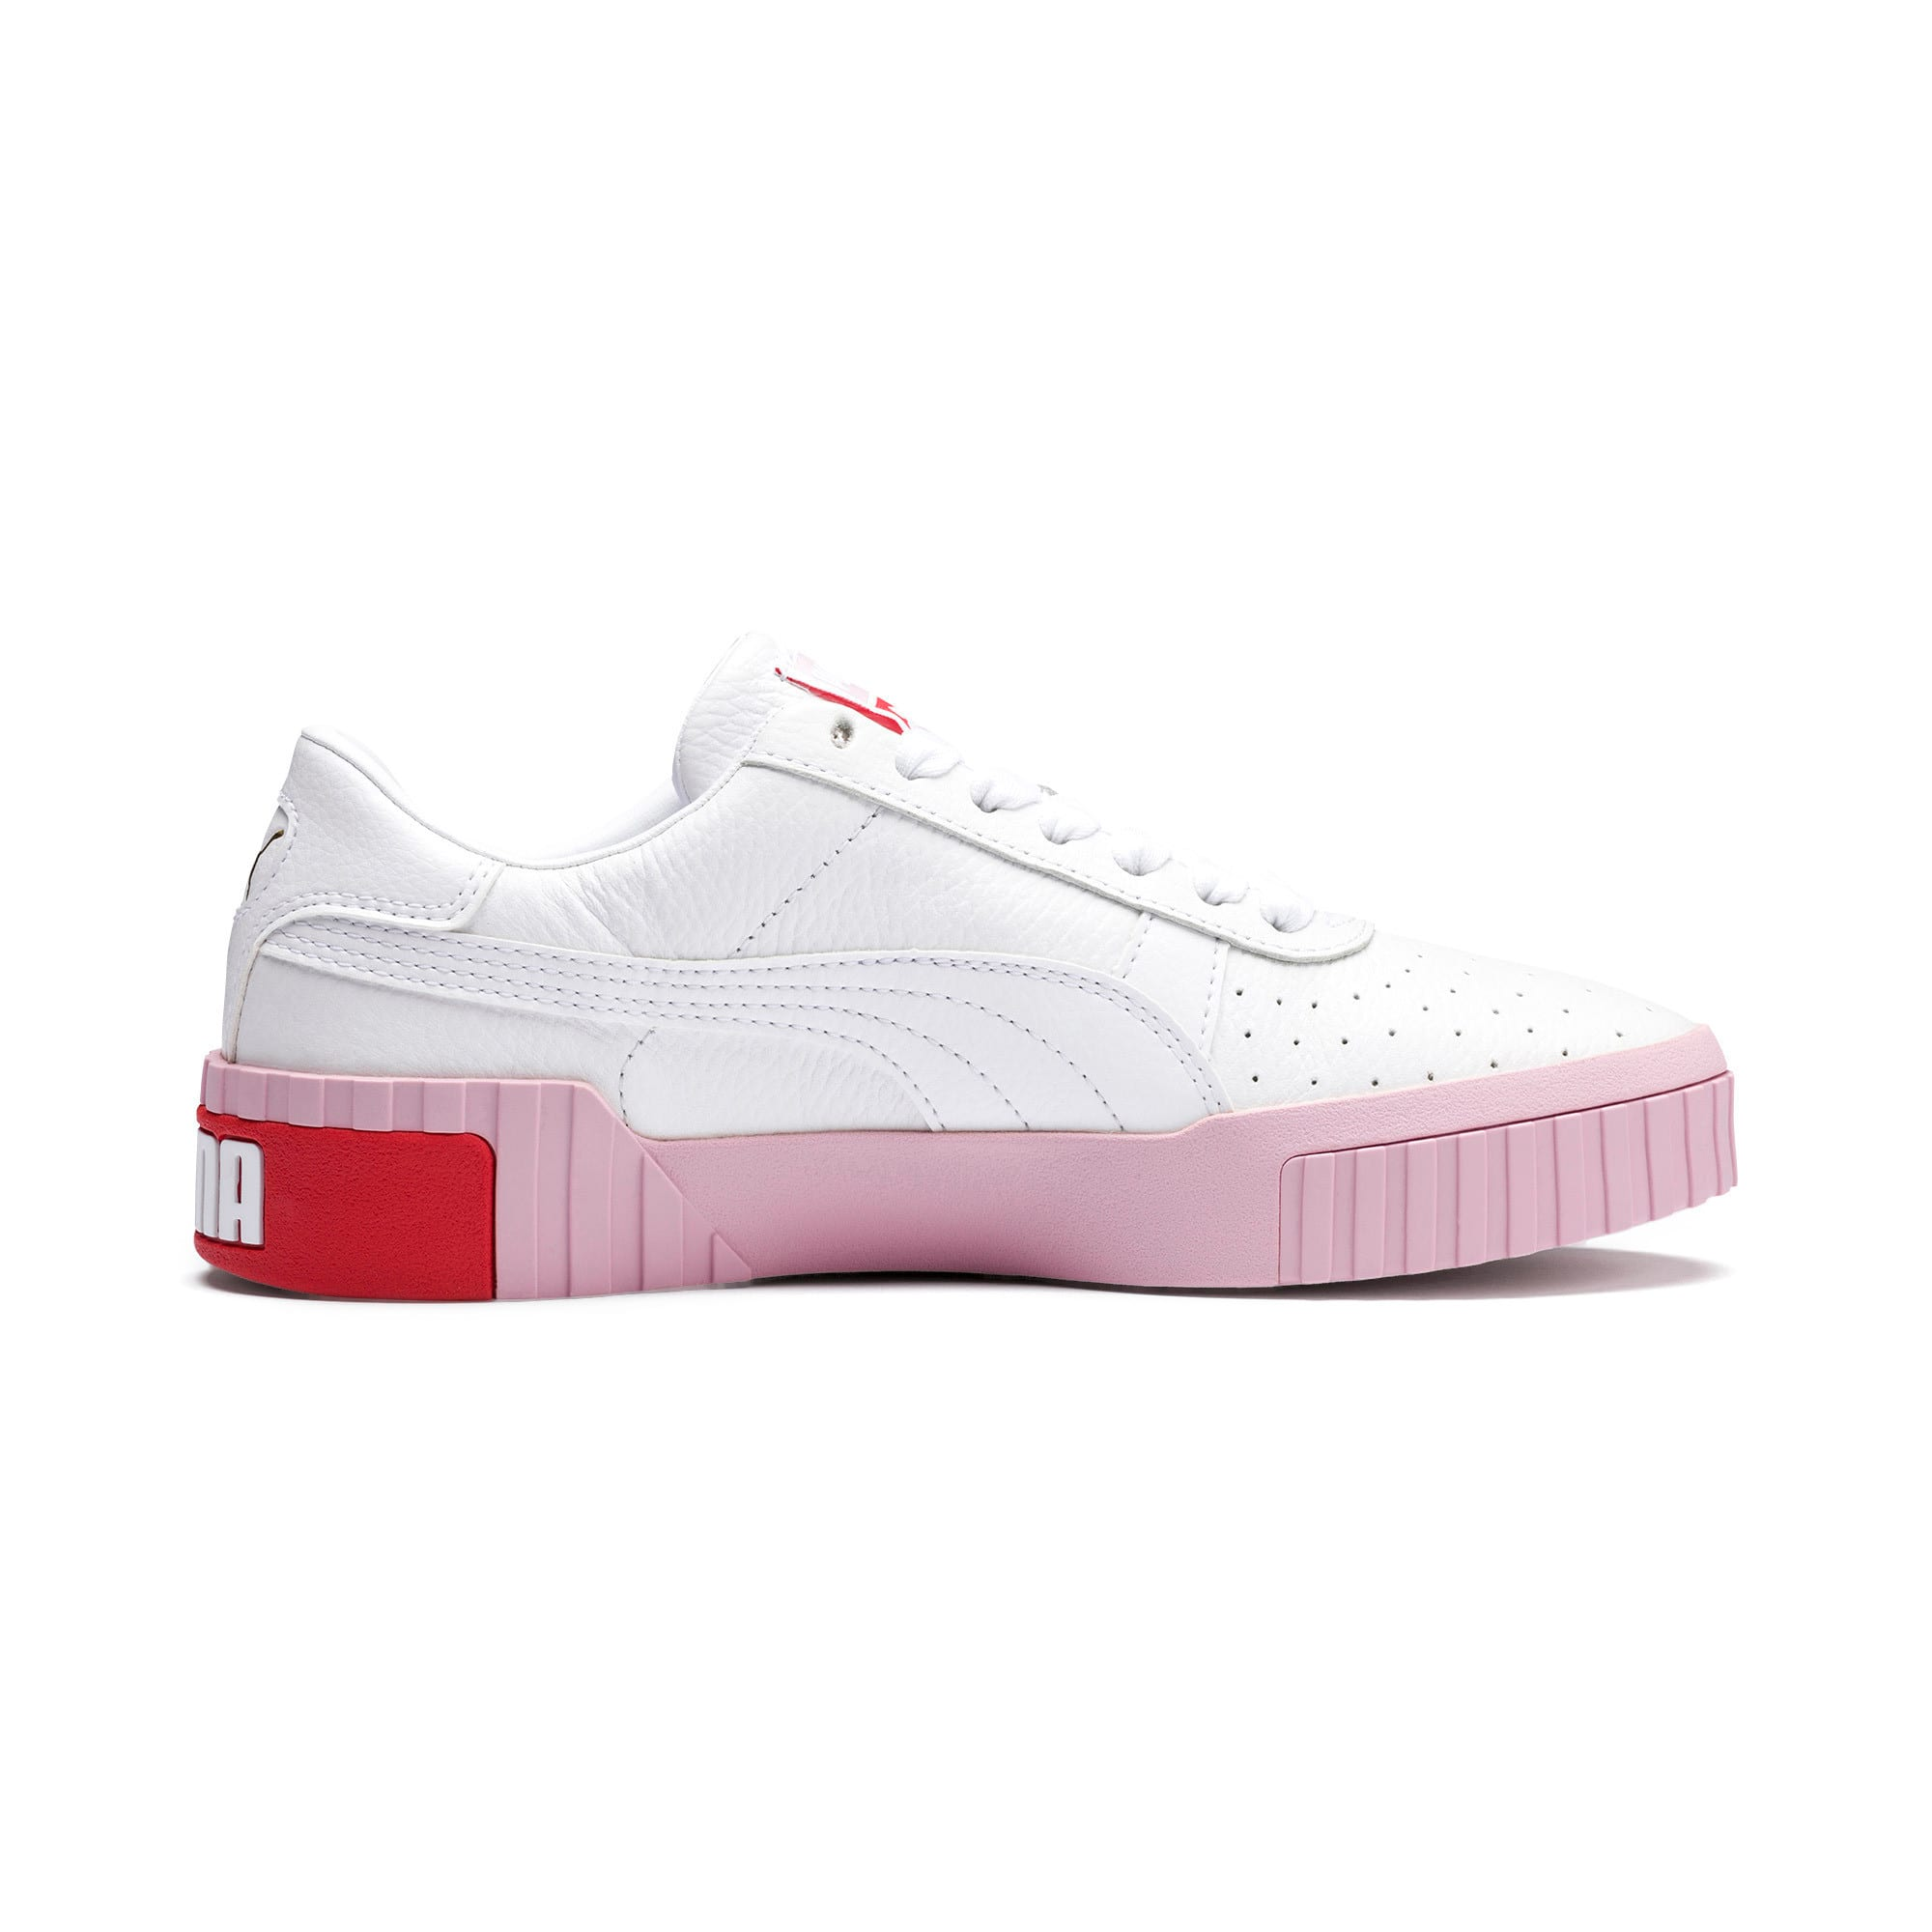 Thumbnail 6 of Cali Women's Trainers, Puma White-Pale Pink, medium